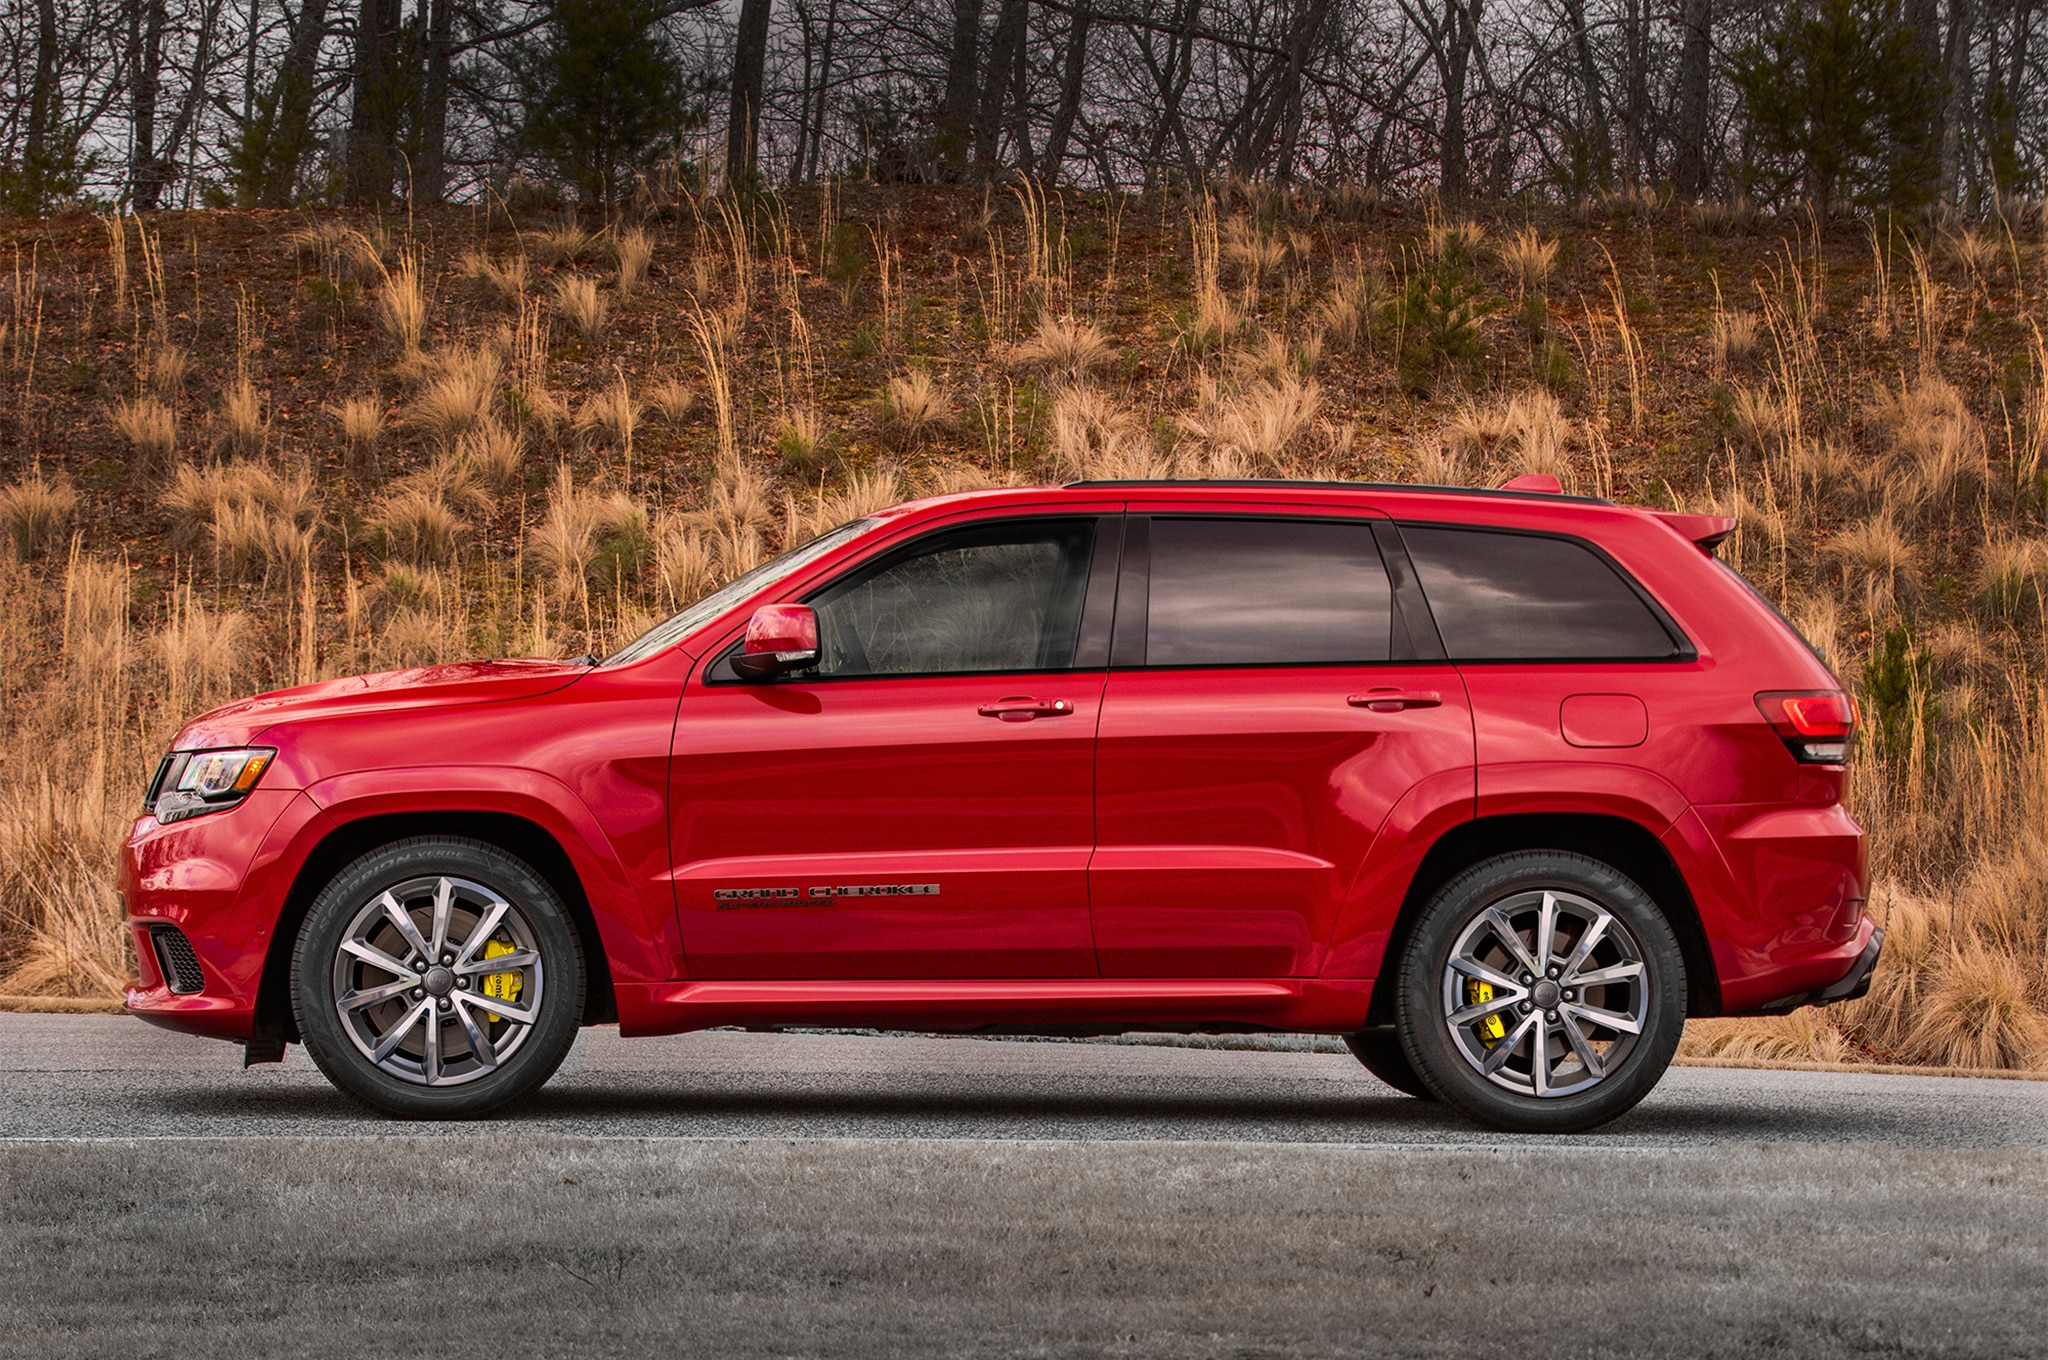 The 707-HP 2018 Jeep Grand Cherokee Trackhawk Starts at $85900